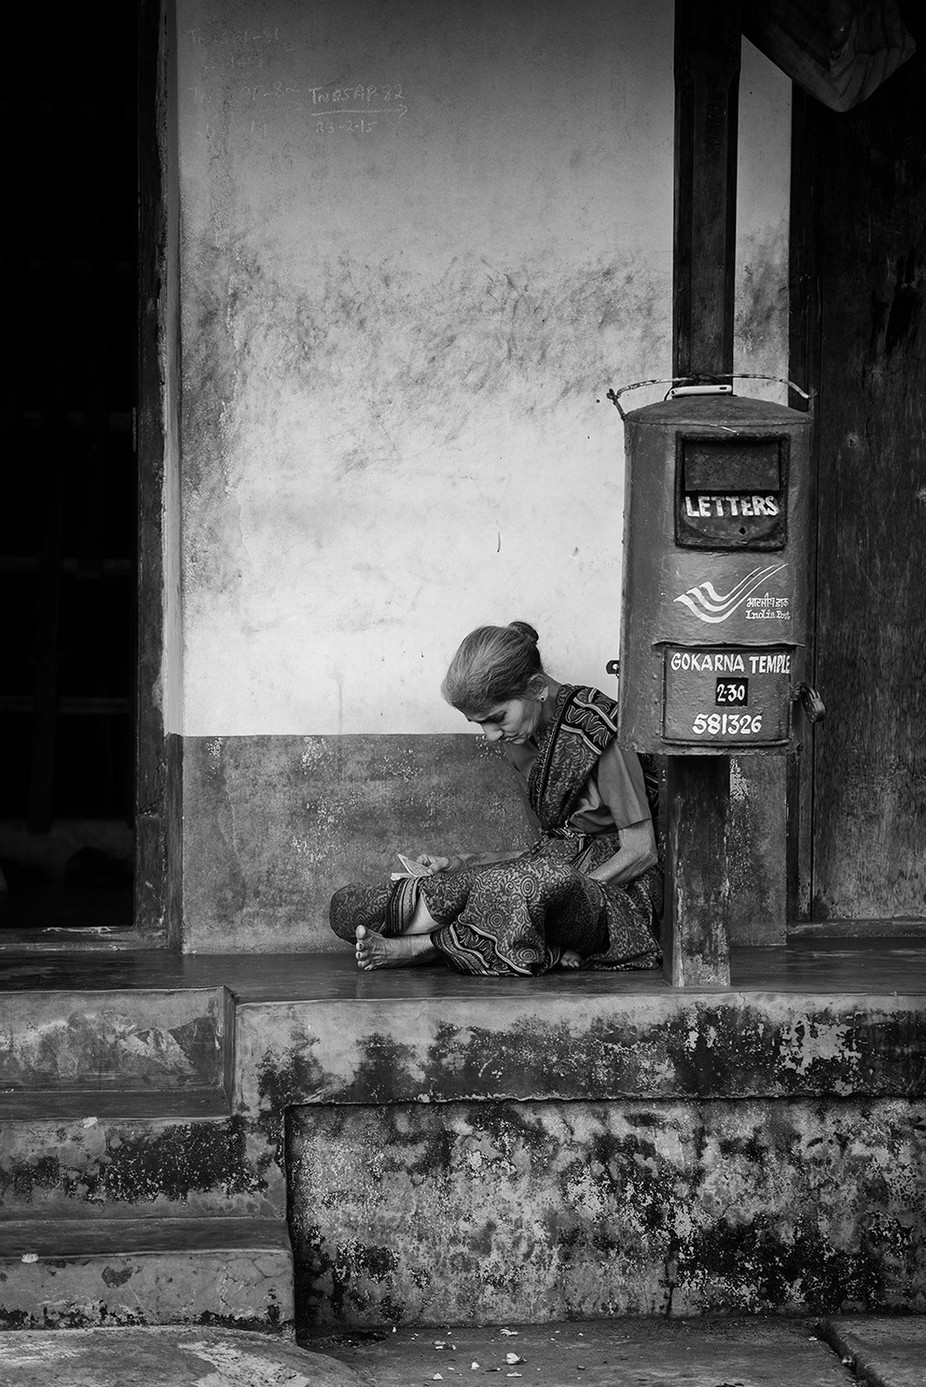 Letters by vladimirchuyko - City Life In Black And White Photo Contest